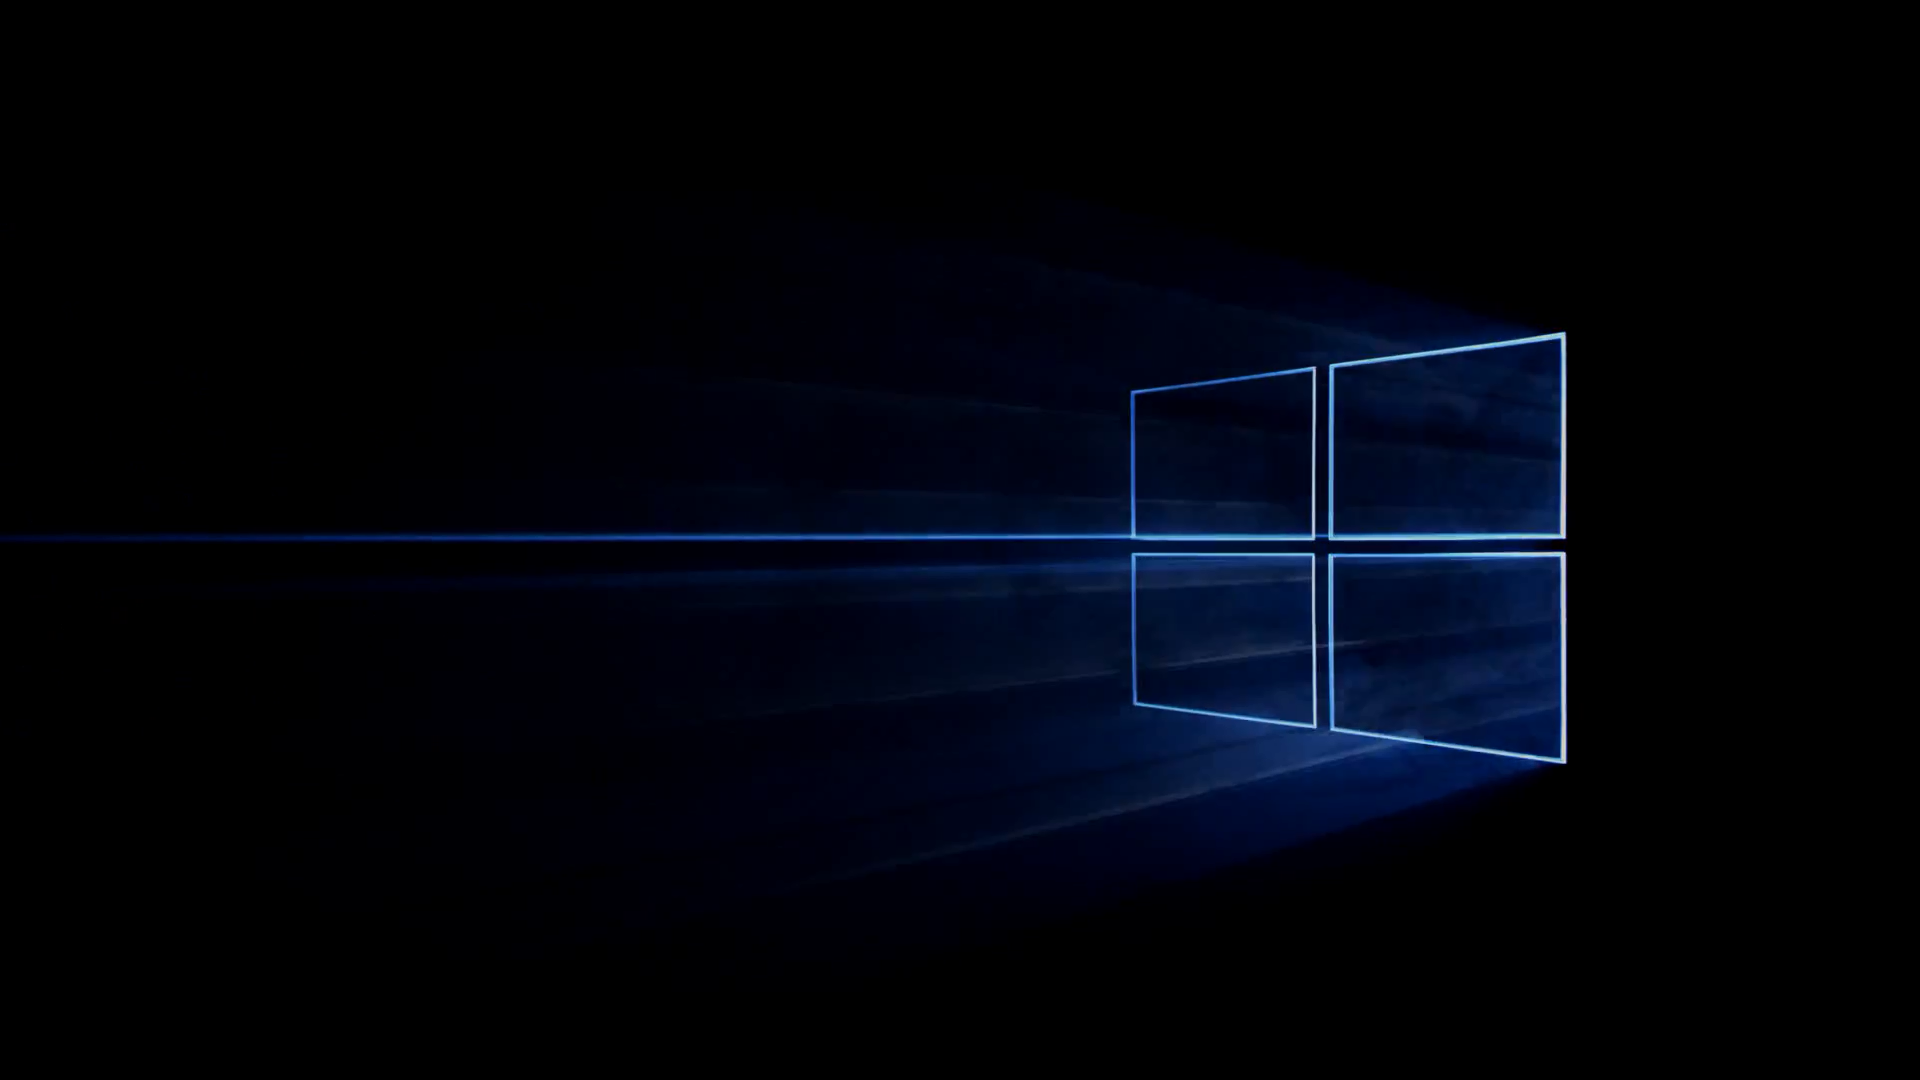 Windows 10 full hd wallpaper and background image for Full wall wallpaper